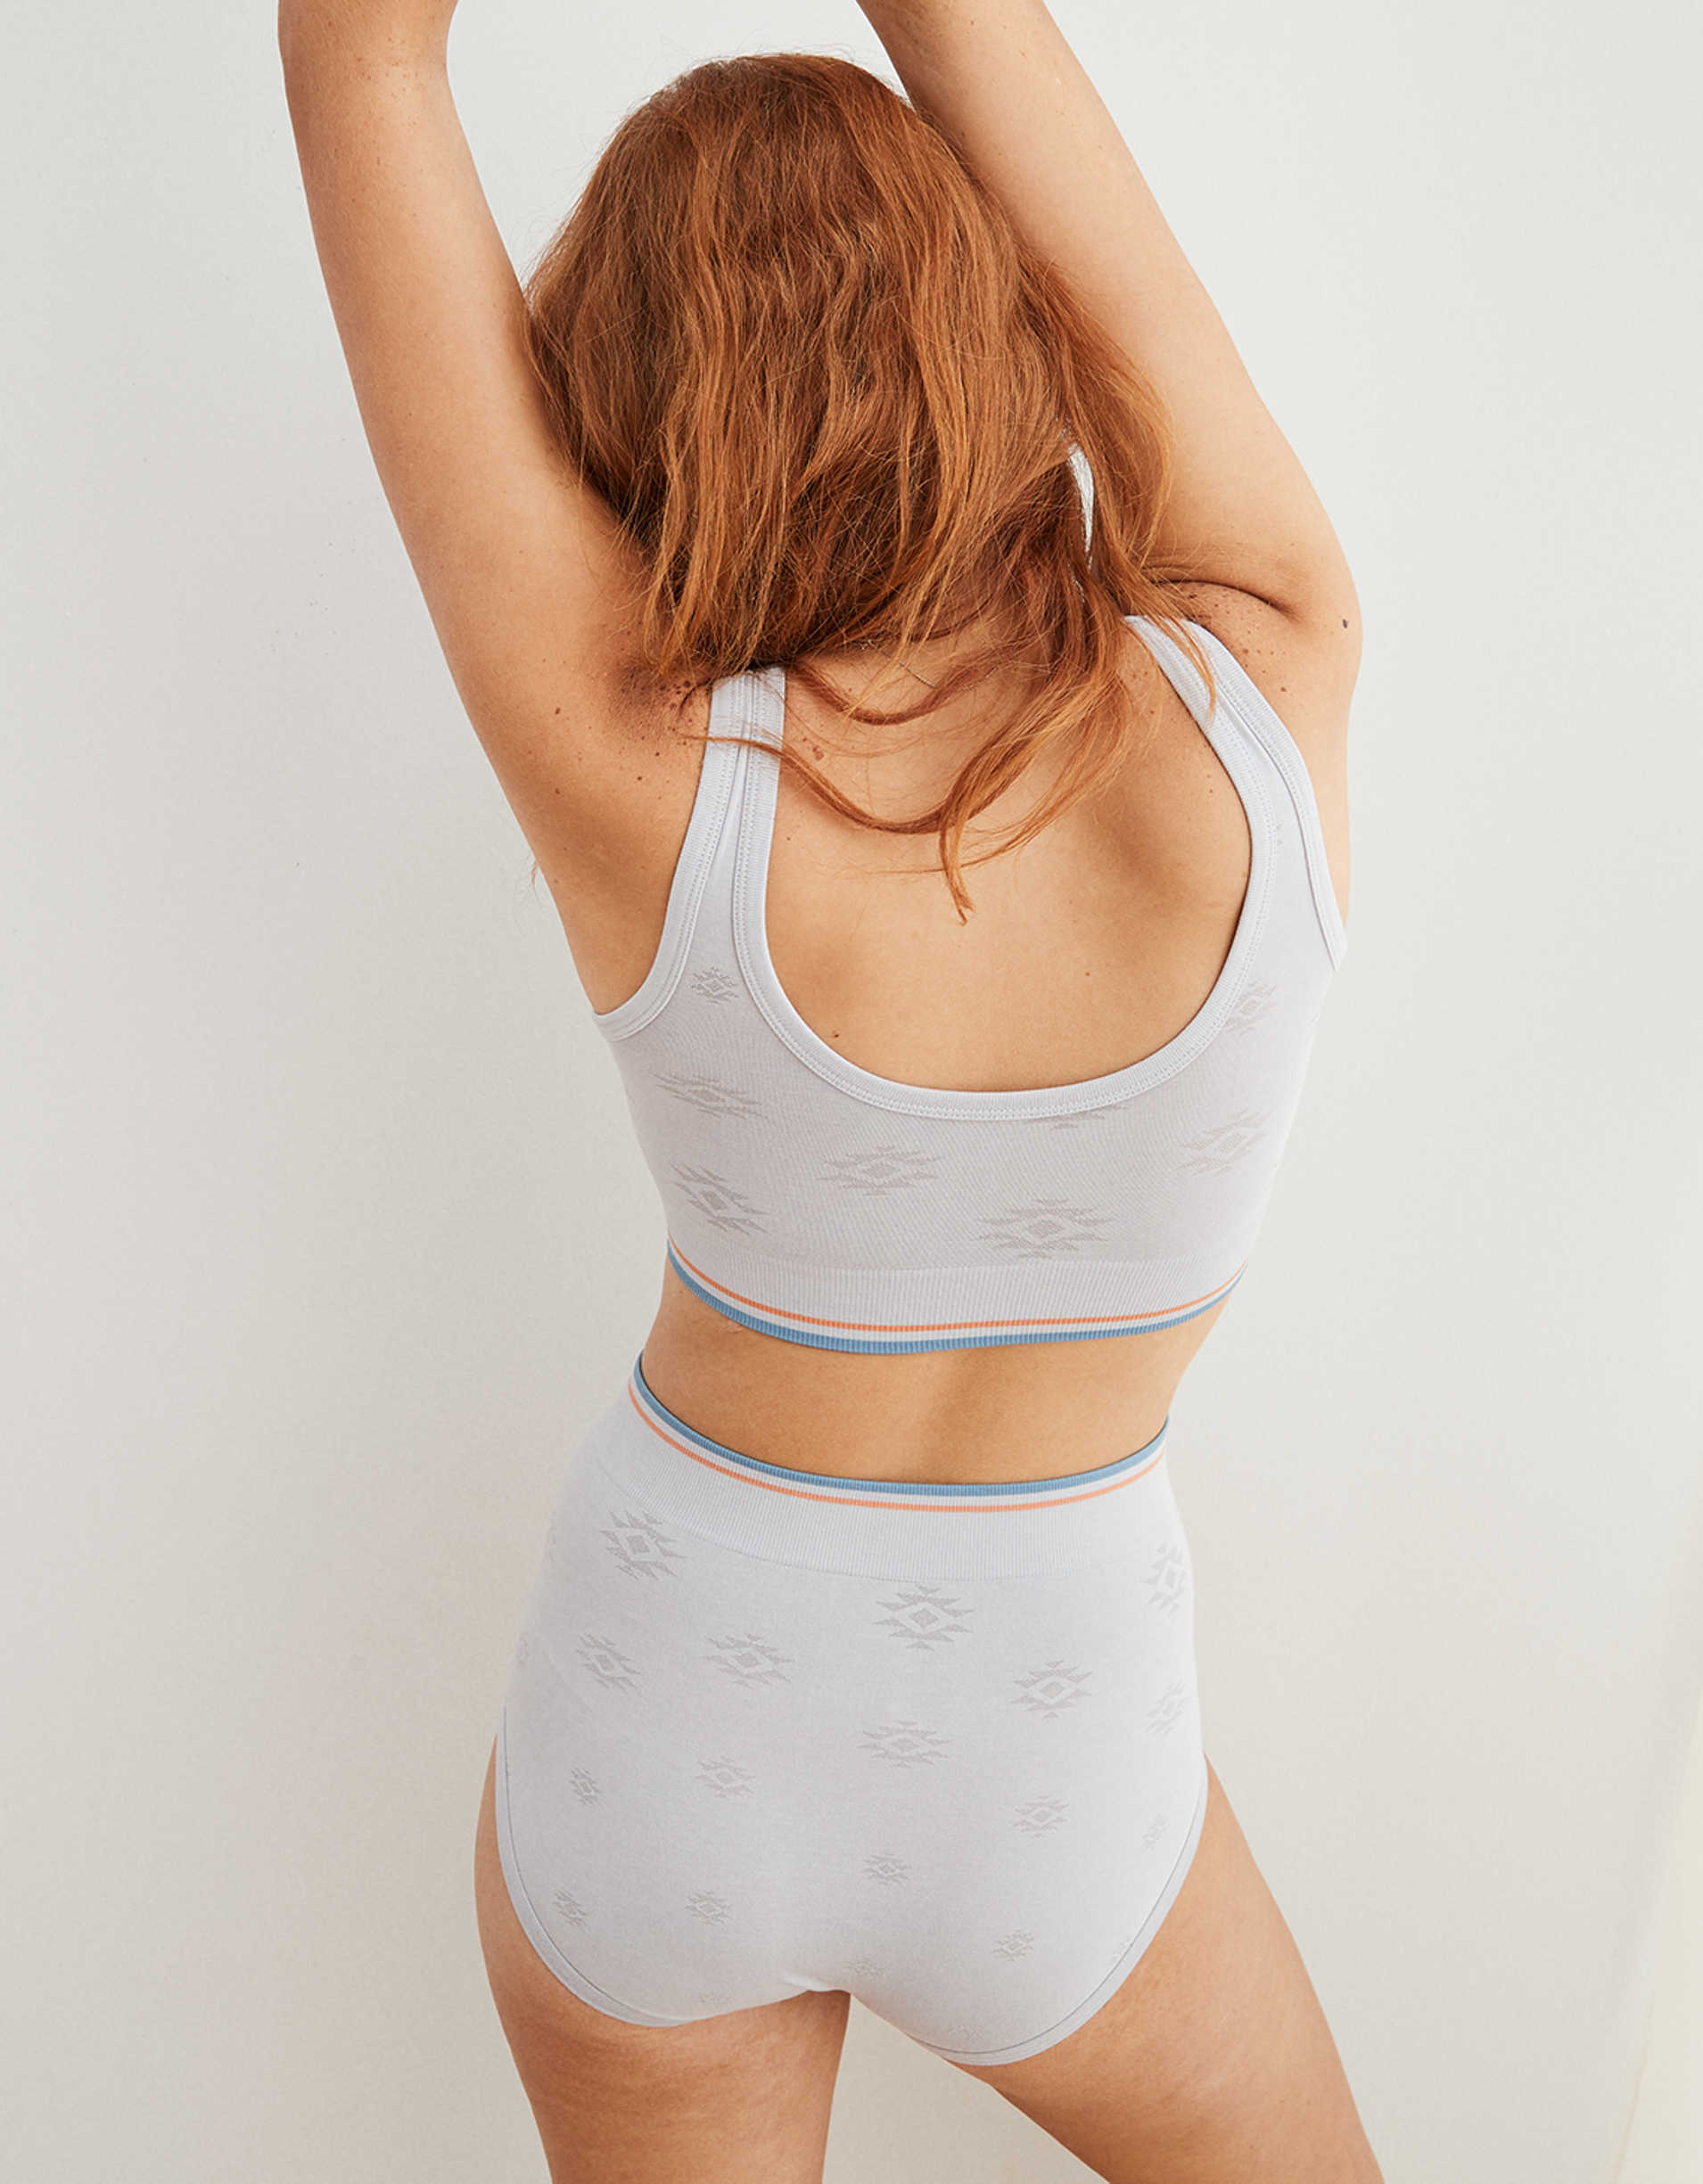 Aerie Seamless Jacquard High Waisted Boybrief